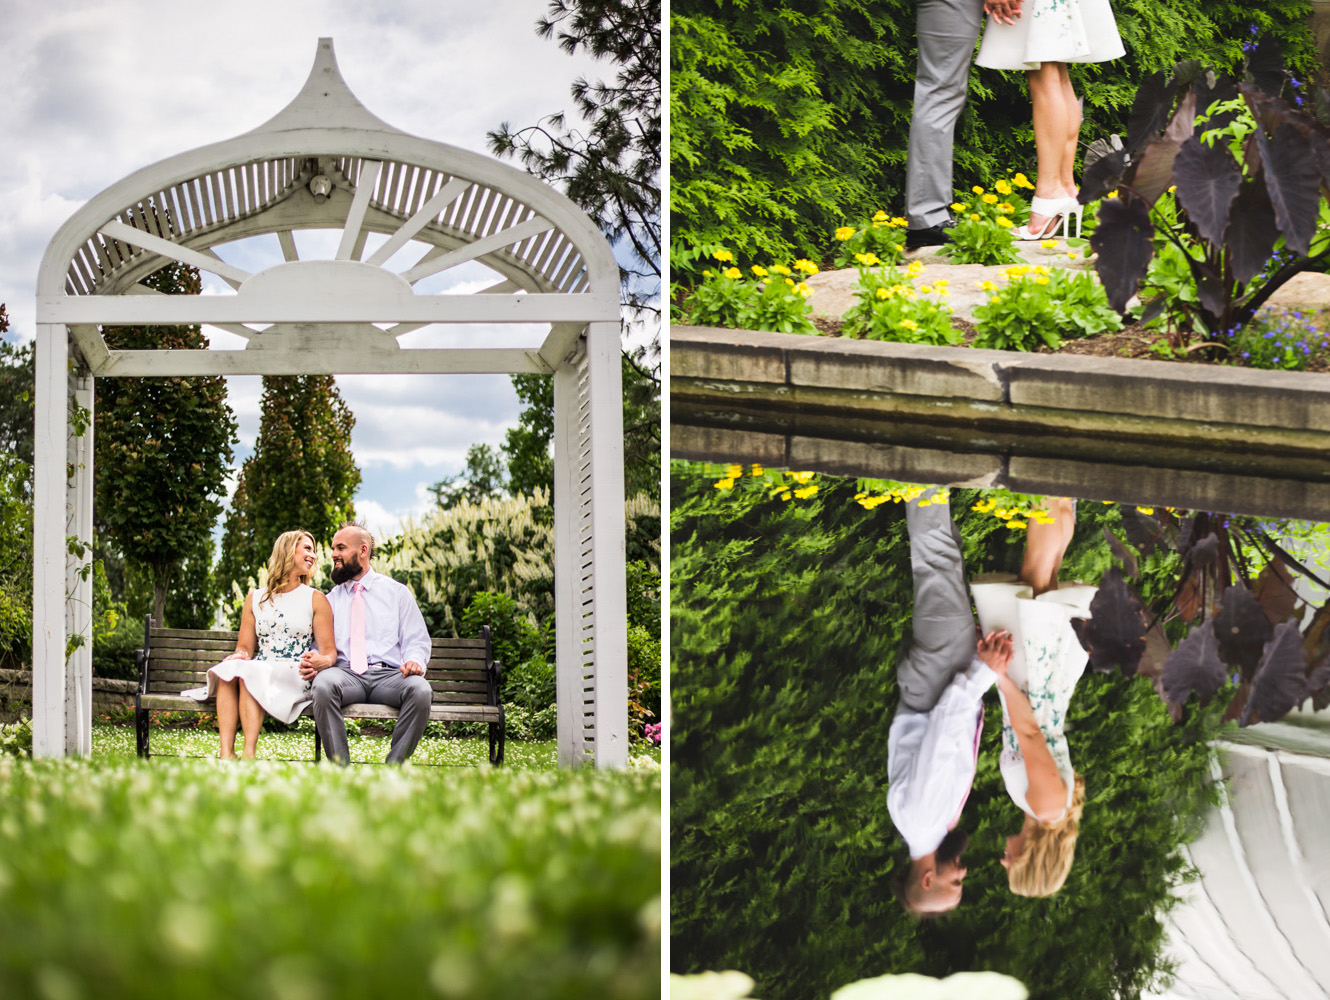 pittsburgh-wedding-photographer-engagement-session-at-phipps-conservatory-man-nguyen-photography-10